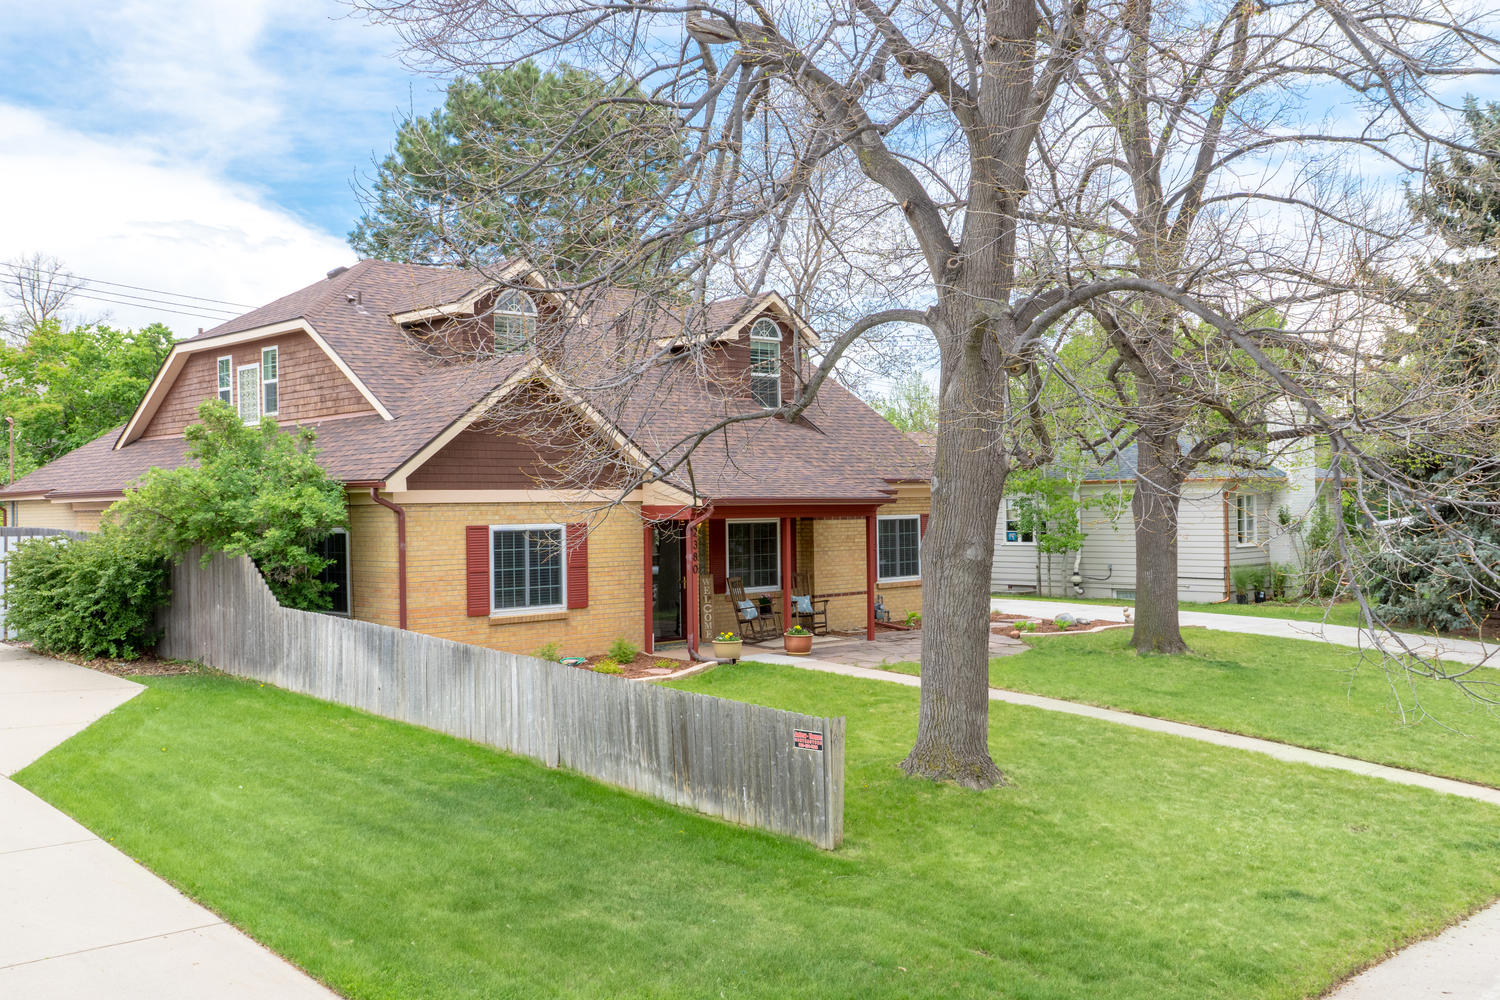 Single Family Home for Sale at Charming 2-story in the heart of University Park 2380 S Madison St Denver, Colorado, 80210 United States